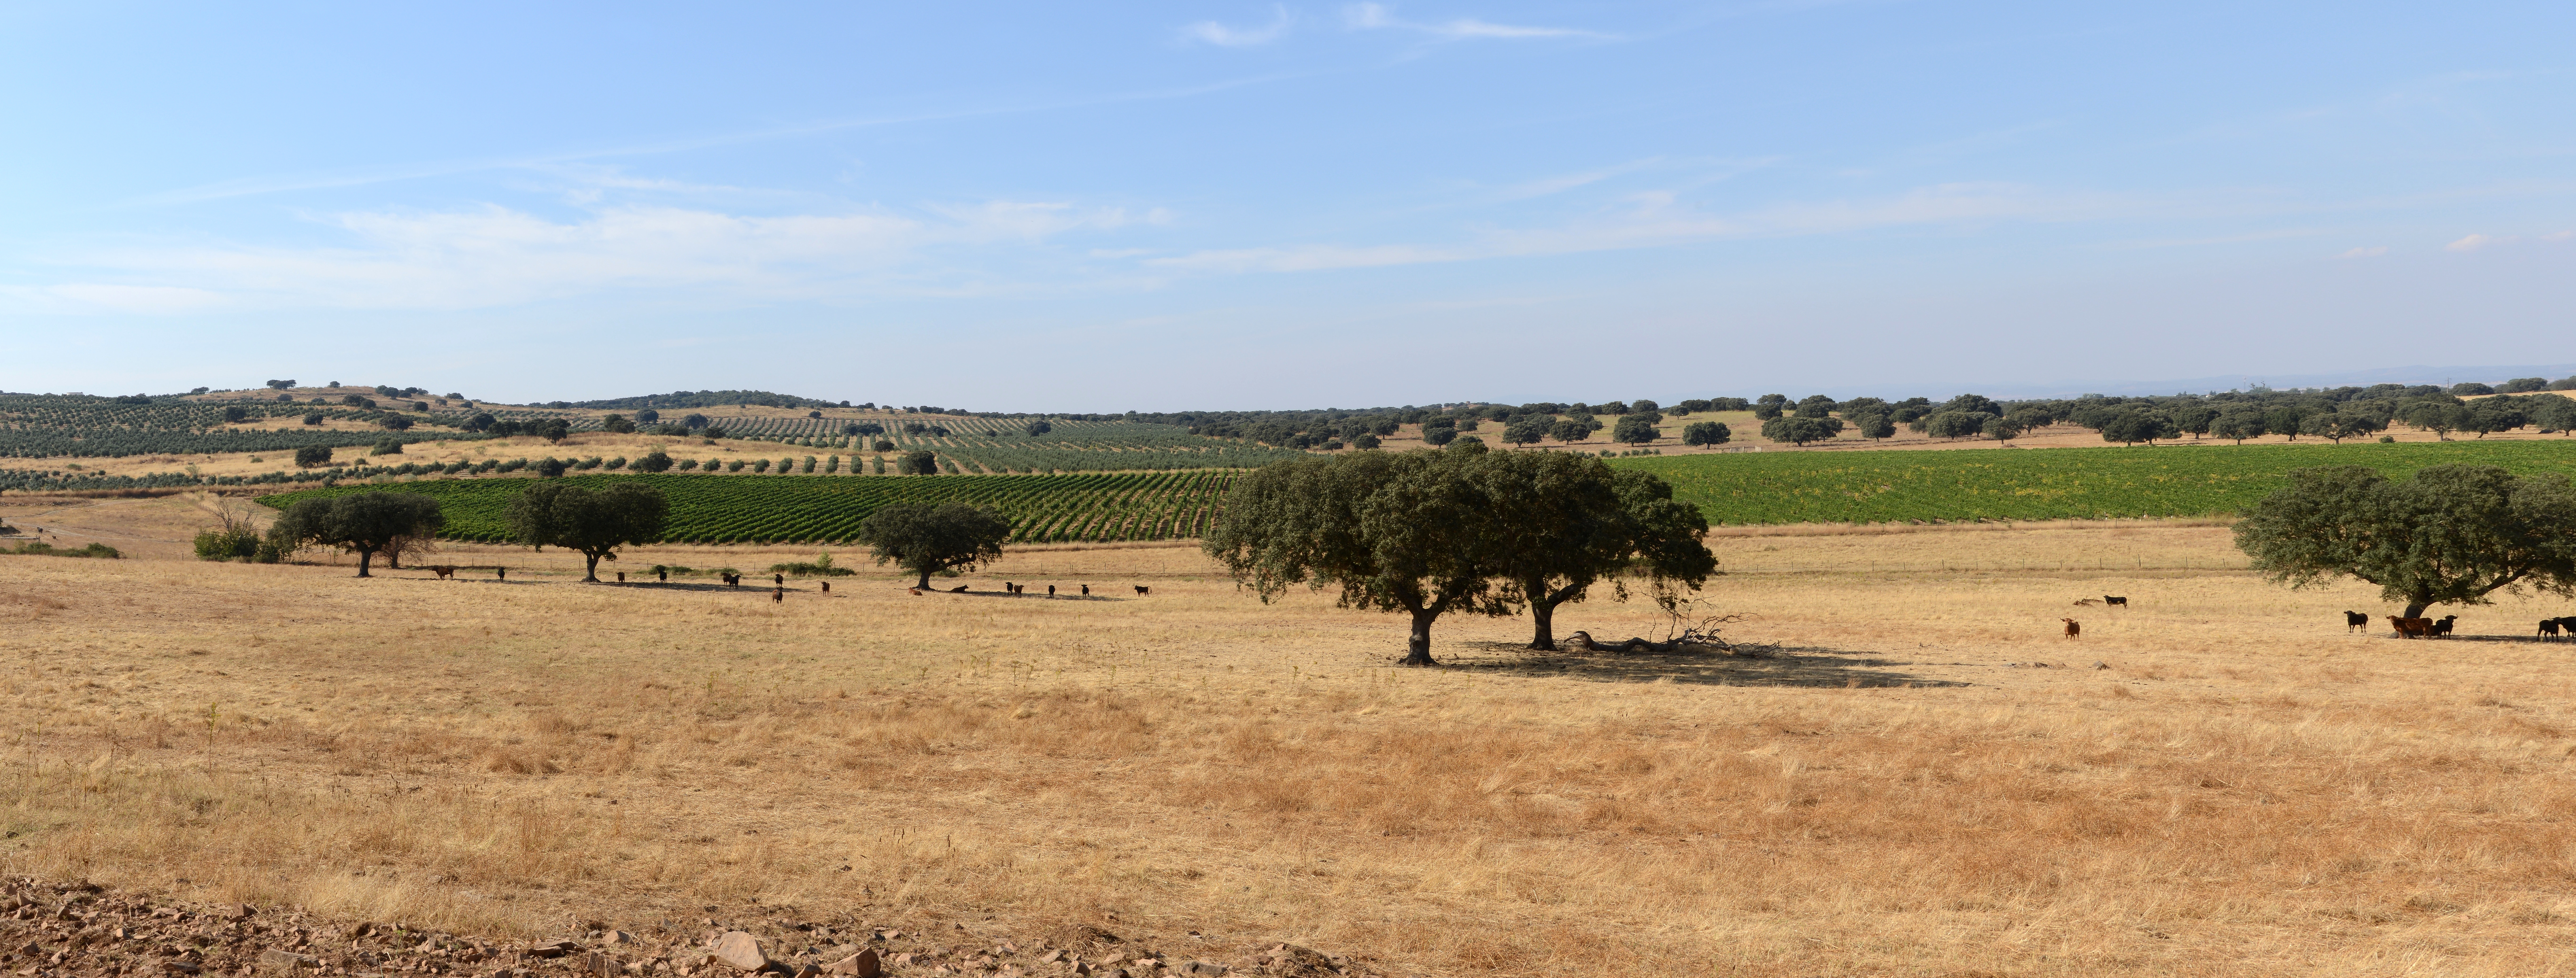 Cork oaks, wheat field, vineyards, and olive trees in Alentejo